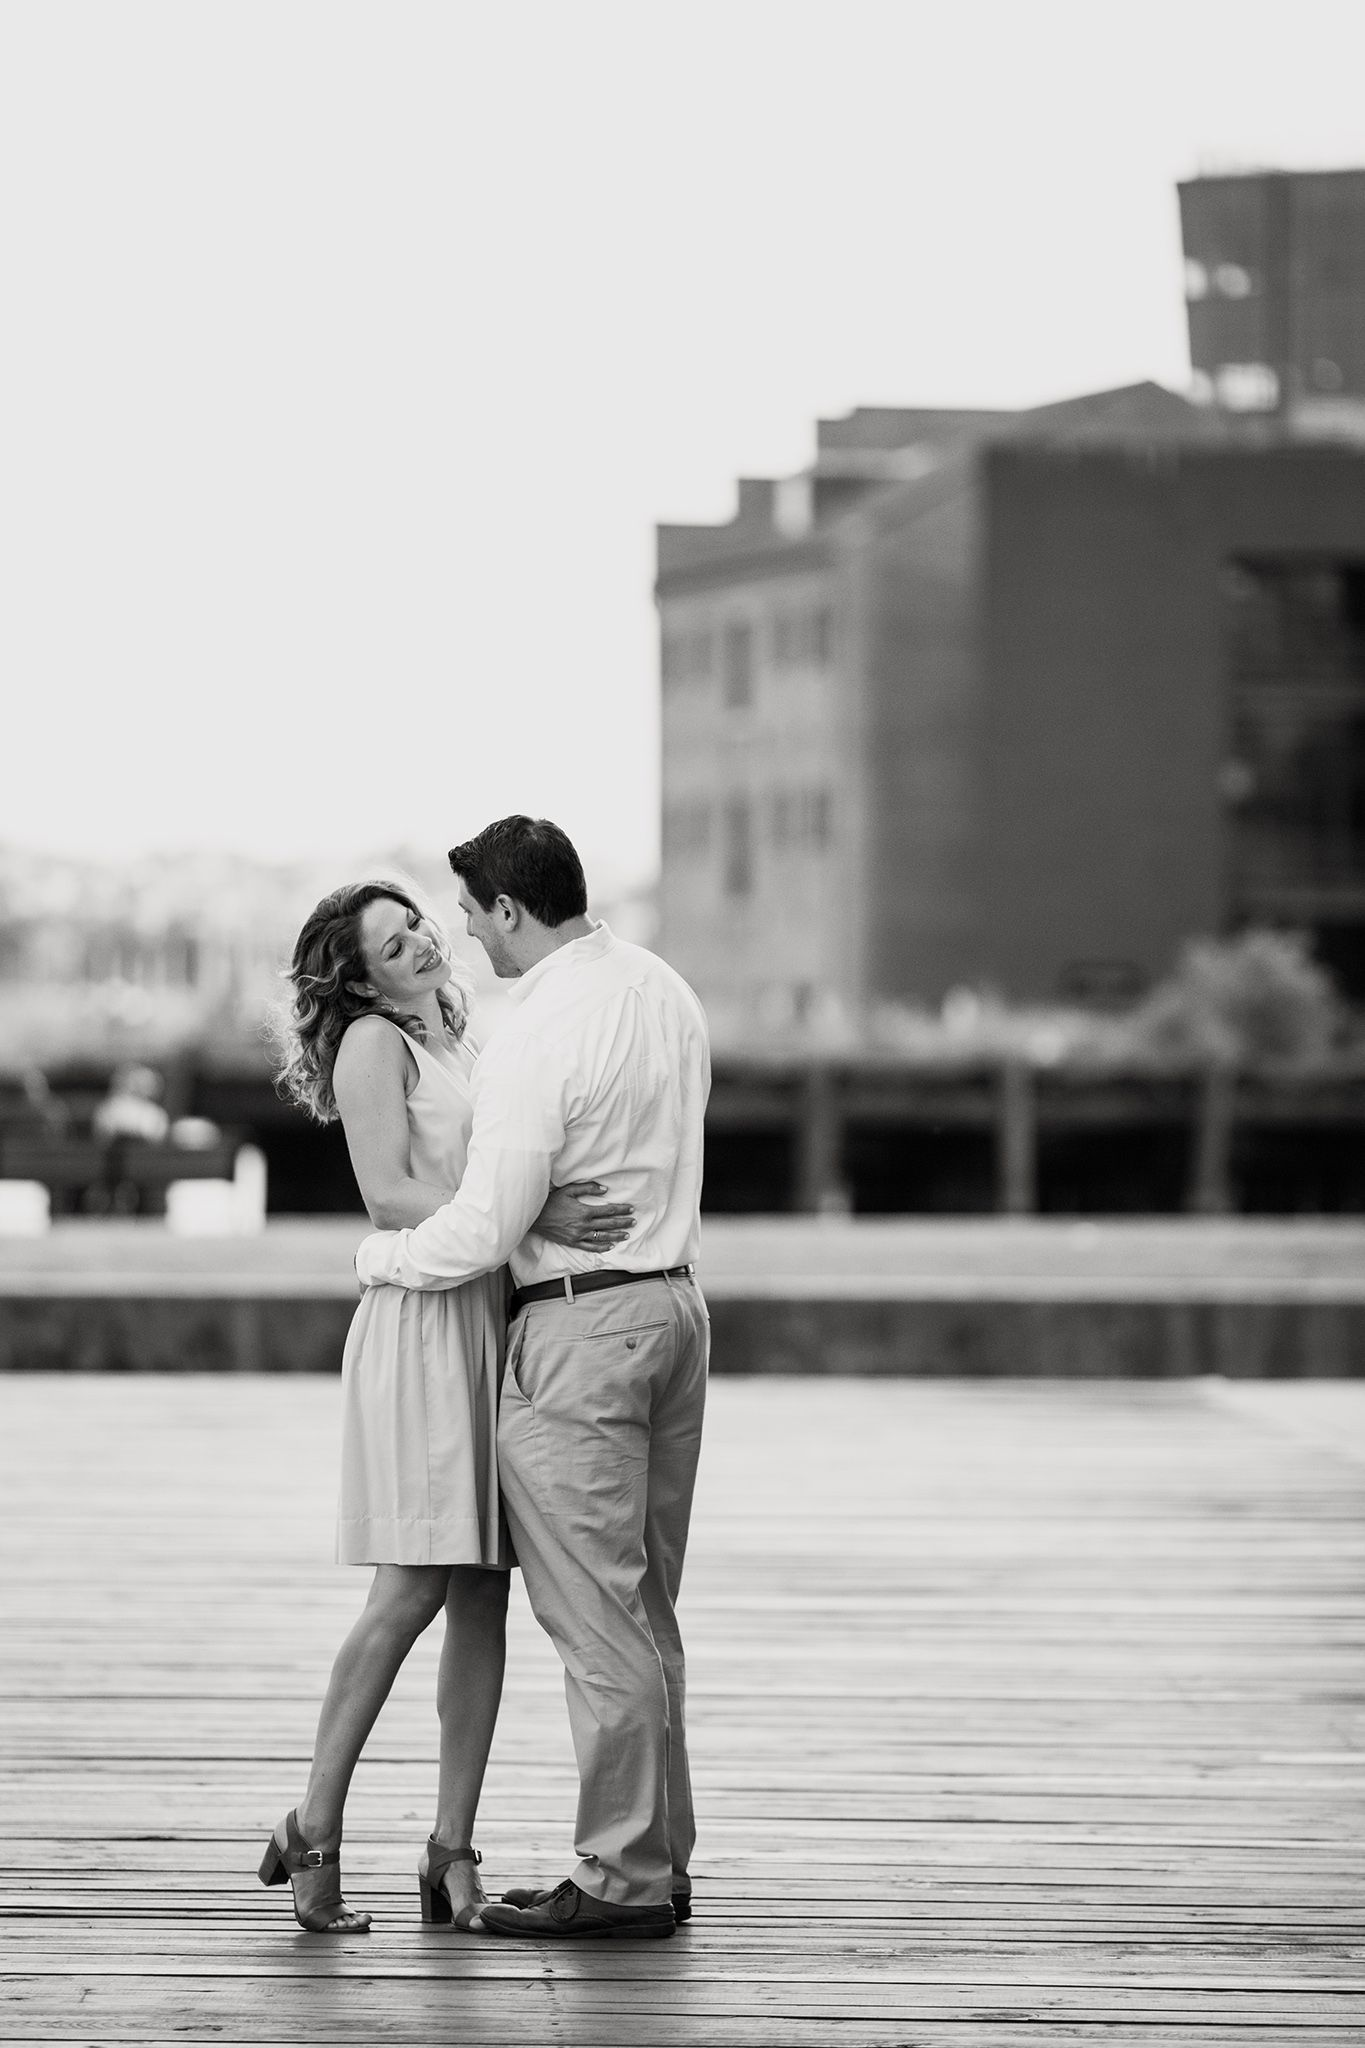 Photo by DOLA Photography {dolaphoto.com} | Black & white engagement photo -  Photo by DOLA Photography {dolaphoto.com} | Black & white engagement photo | Inner Harbor Baltimore - #Black #DOLA #dolaphotocom #Engagement #EngagementPhotosclassy #EngagementPhotosindian #EngagementPhotoswoods #formalEngagementPhotos #naturalEngagementPhotos #photo #Photography #plussizeEngagementPhotos #rusticEngagementPhotos #whattowearforEngagementPhotos #white